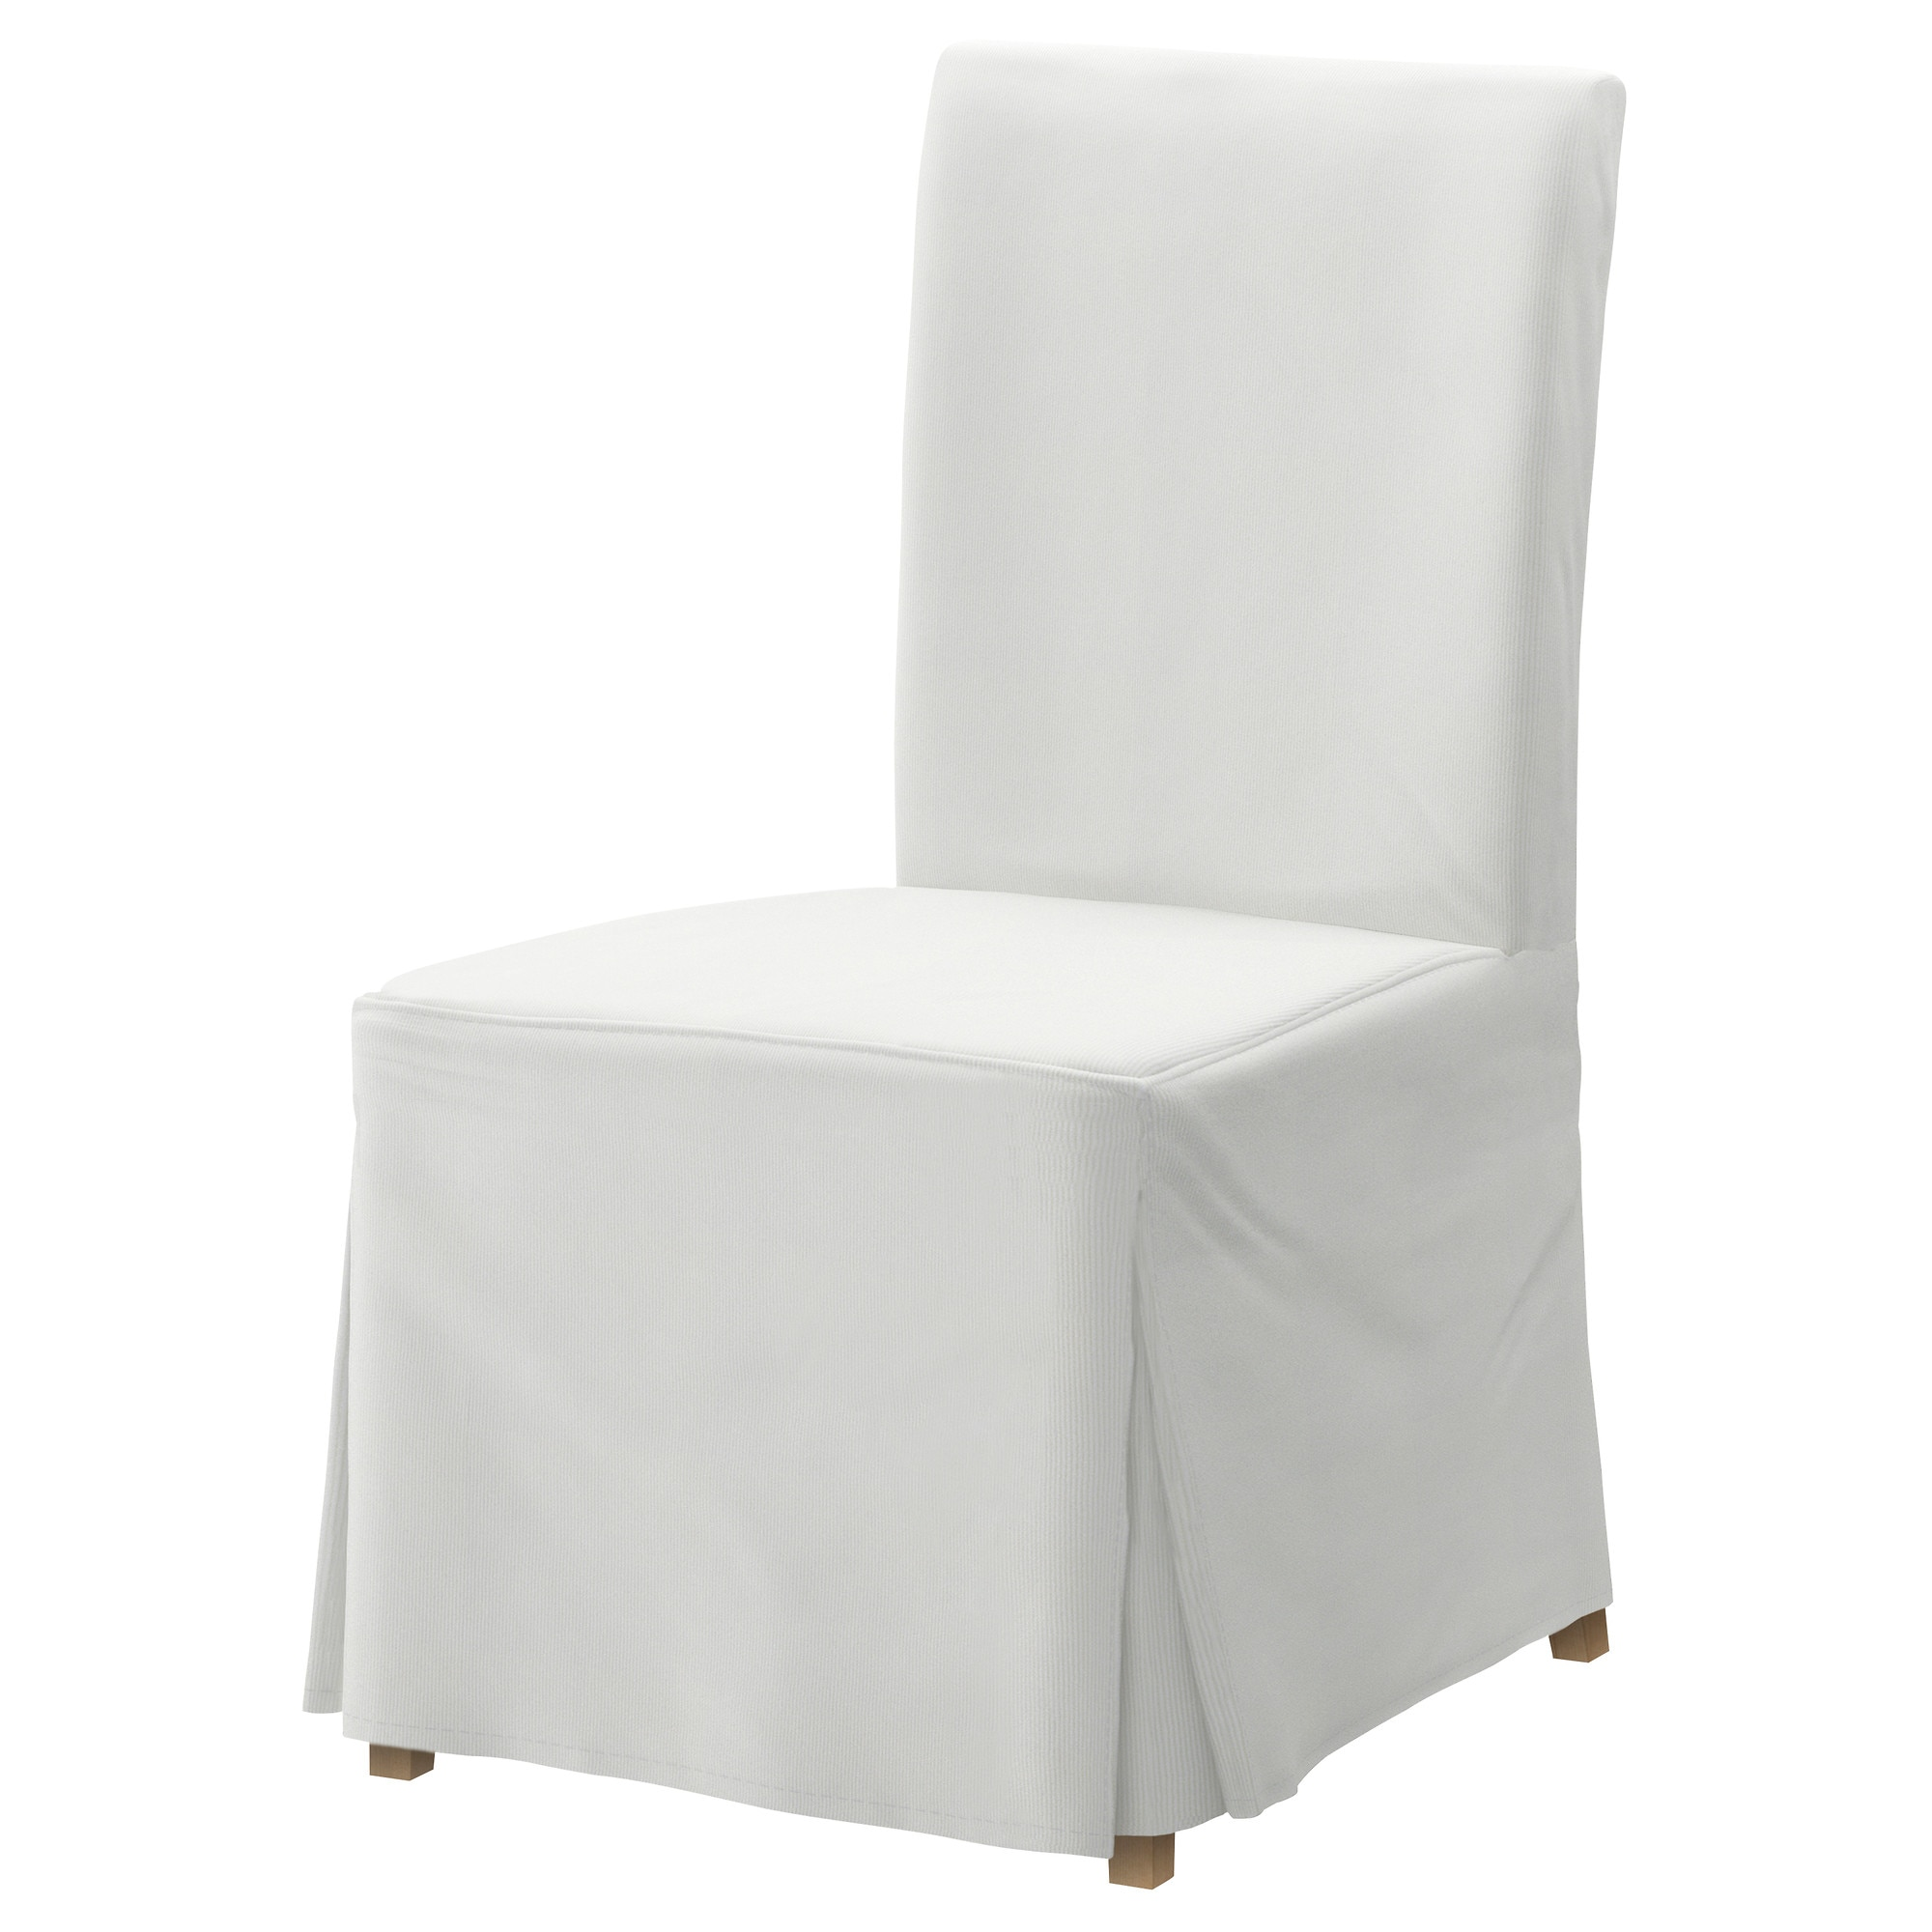 henriksdal chair with long cover birch blekinge white tested for 243 lb width